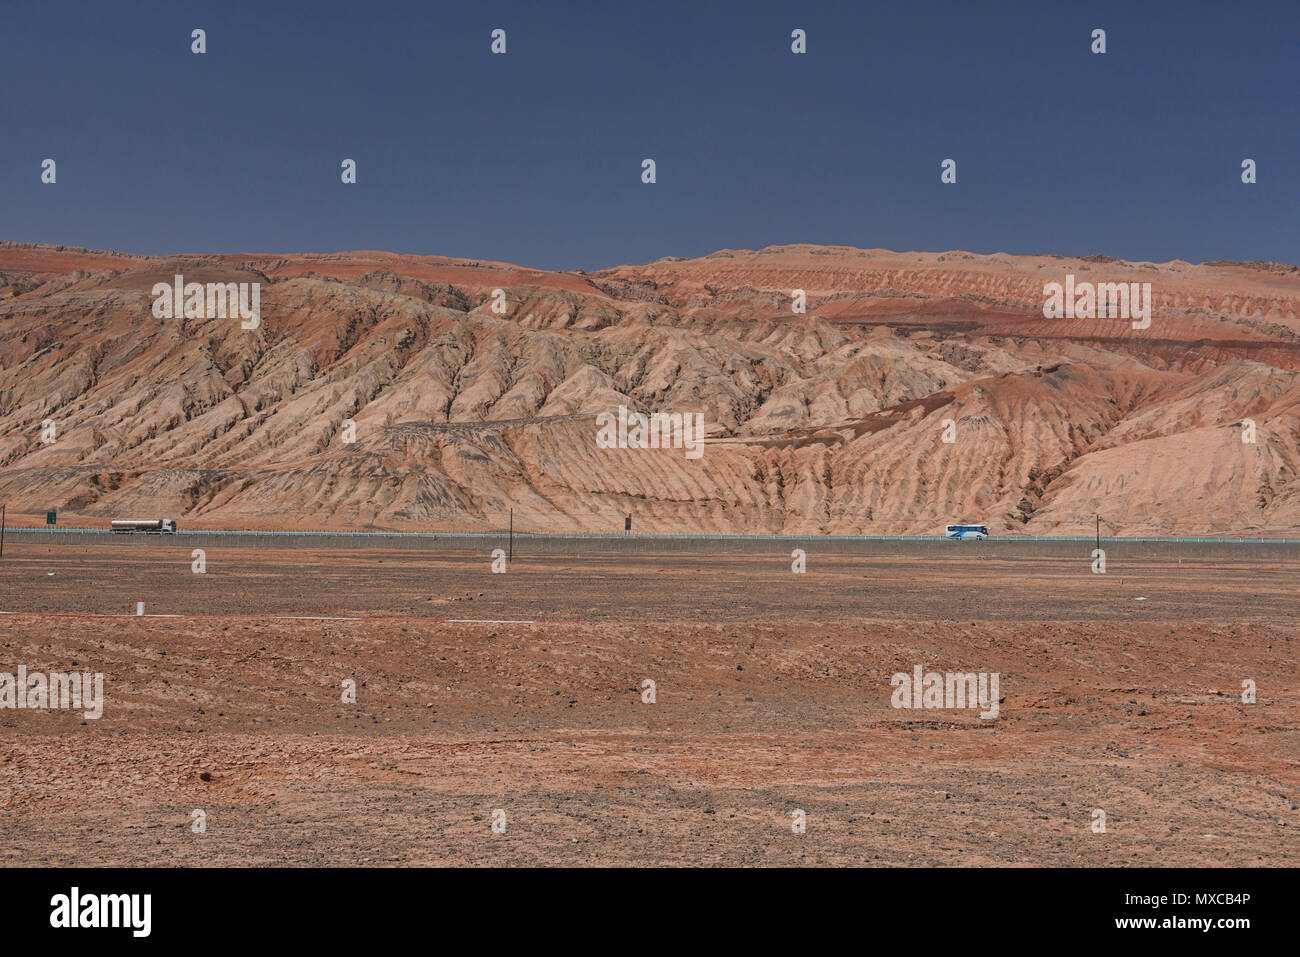 Spectrum of colors in the Flaming Mountains, Turpan, Xinjiang, China Stock Photo